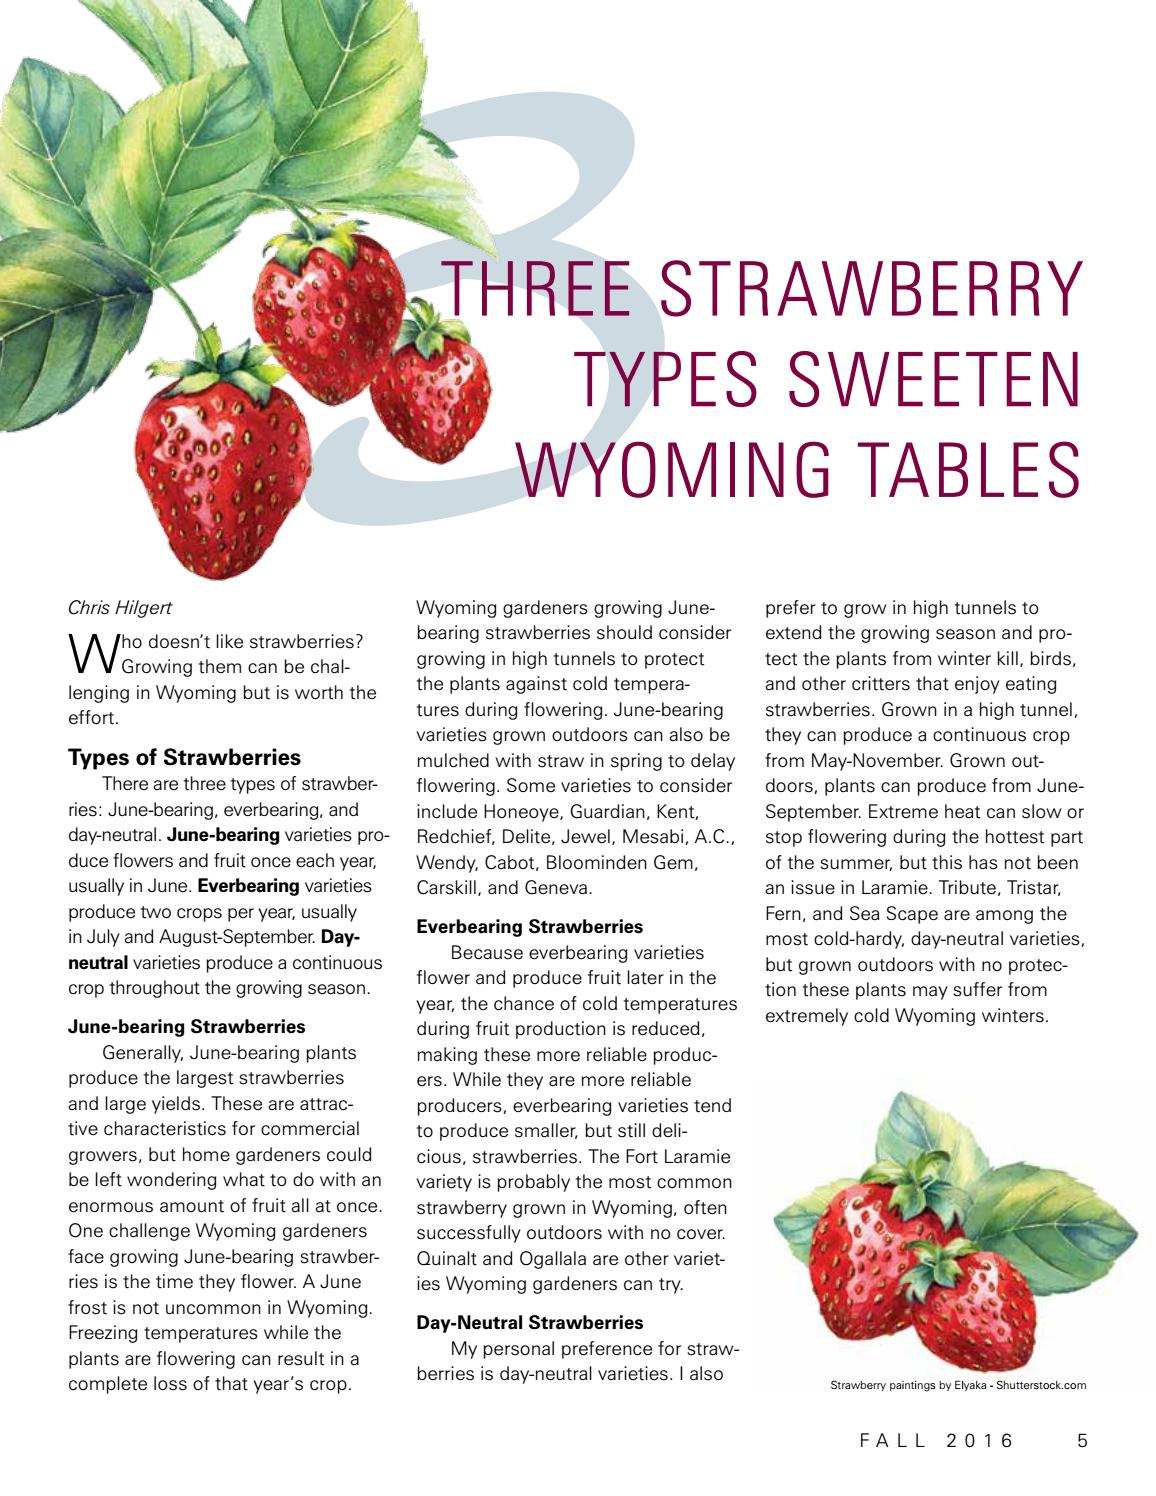 Strawberry Varieties Pictures